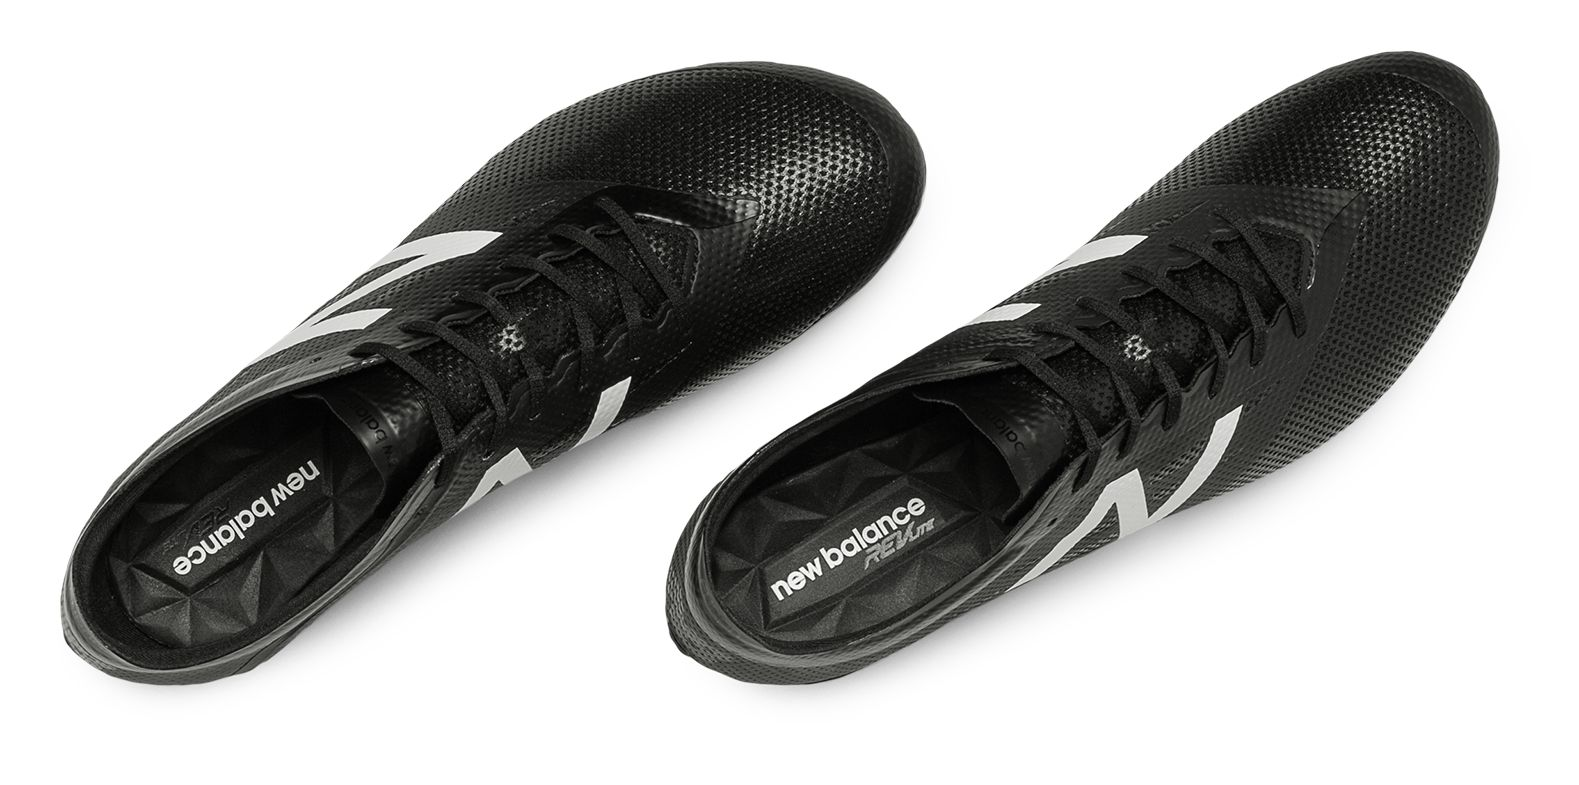 ab5e6bdd5 Black New Balance Furon 2.0 Boots Released - leaked soccer